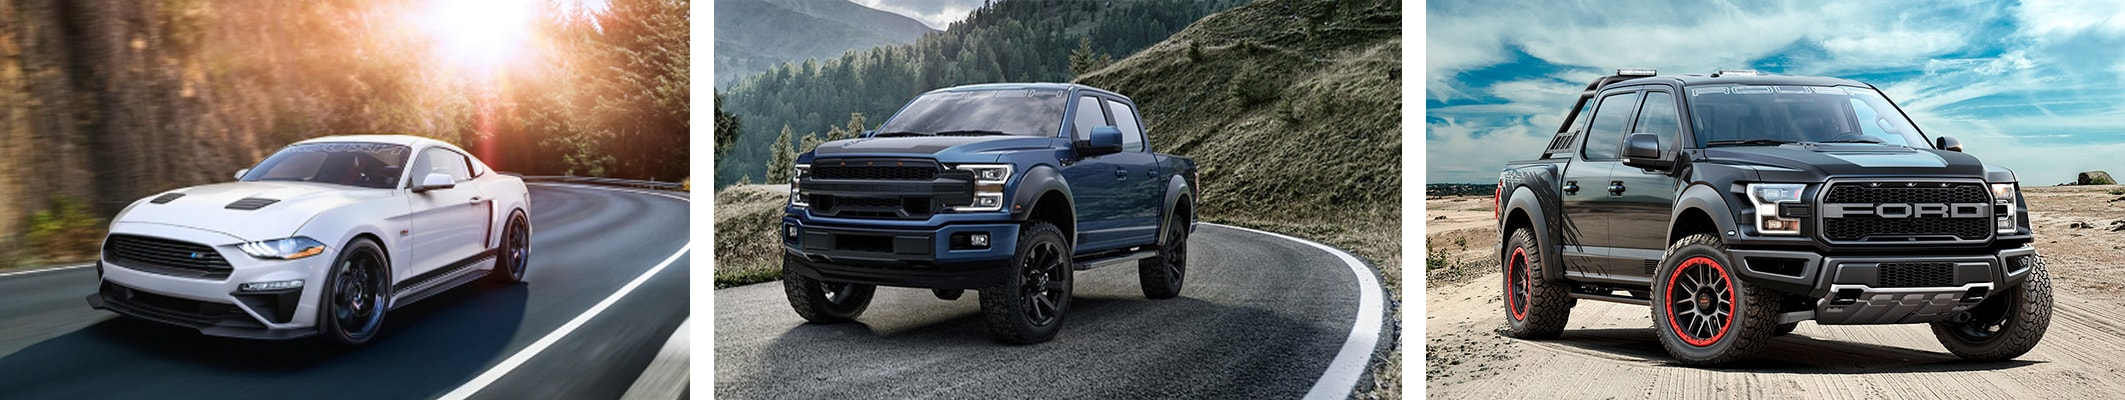 Ford Performance and Off-Road Vehicles for Sale in Williamston